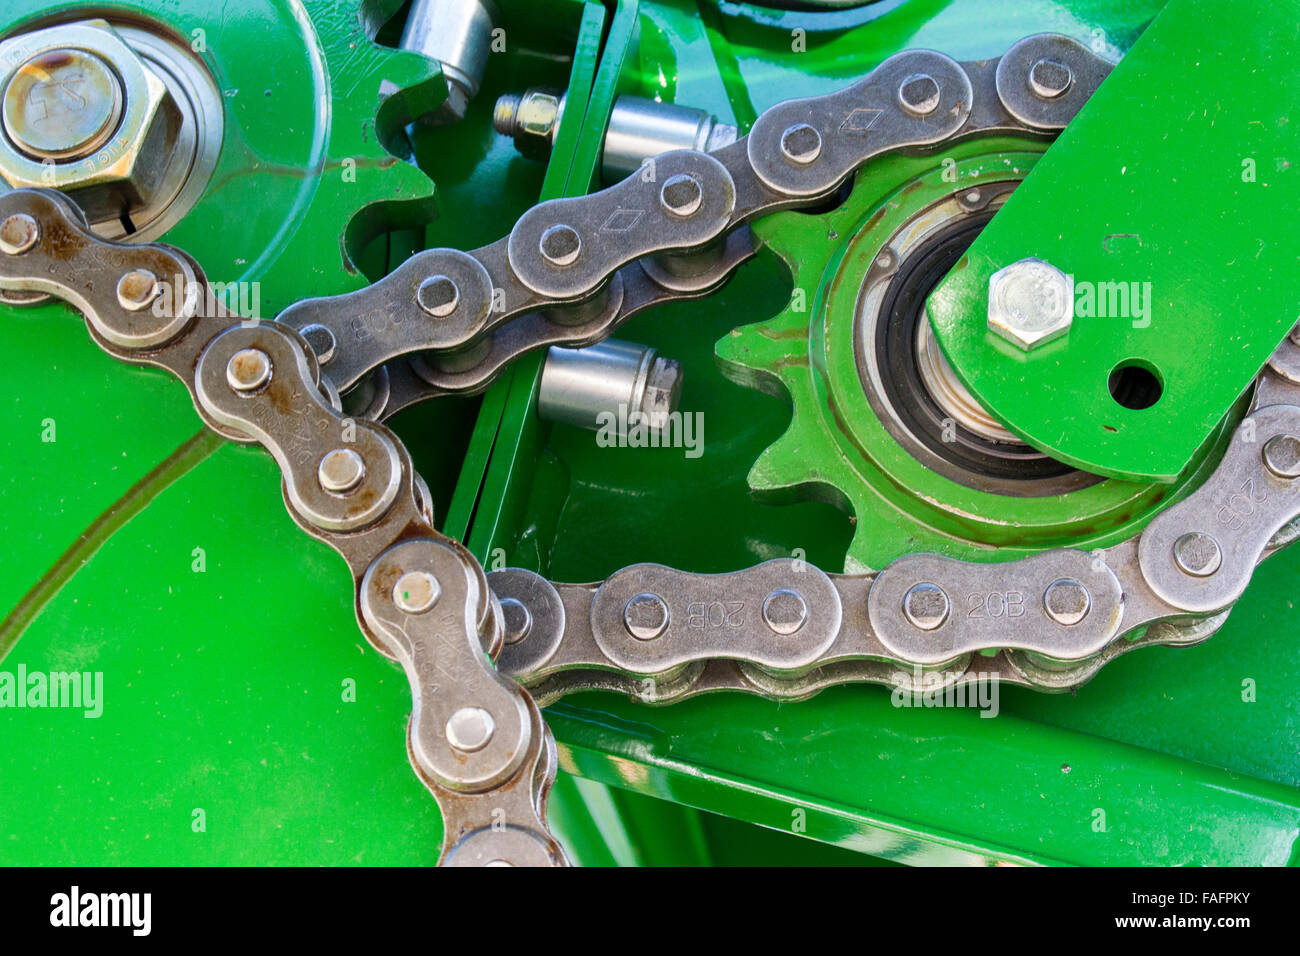 Internal workings of a big baler, showing cogs and chains. - Stock Image